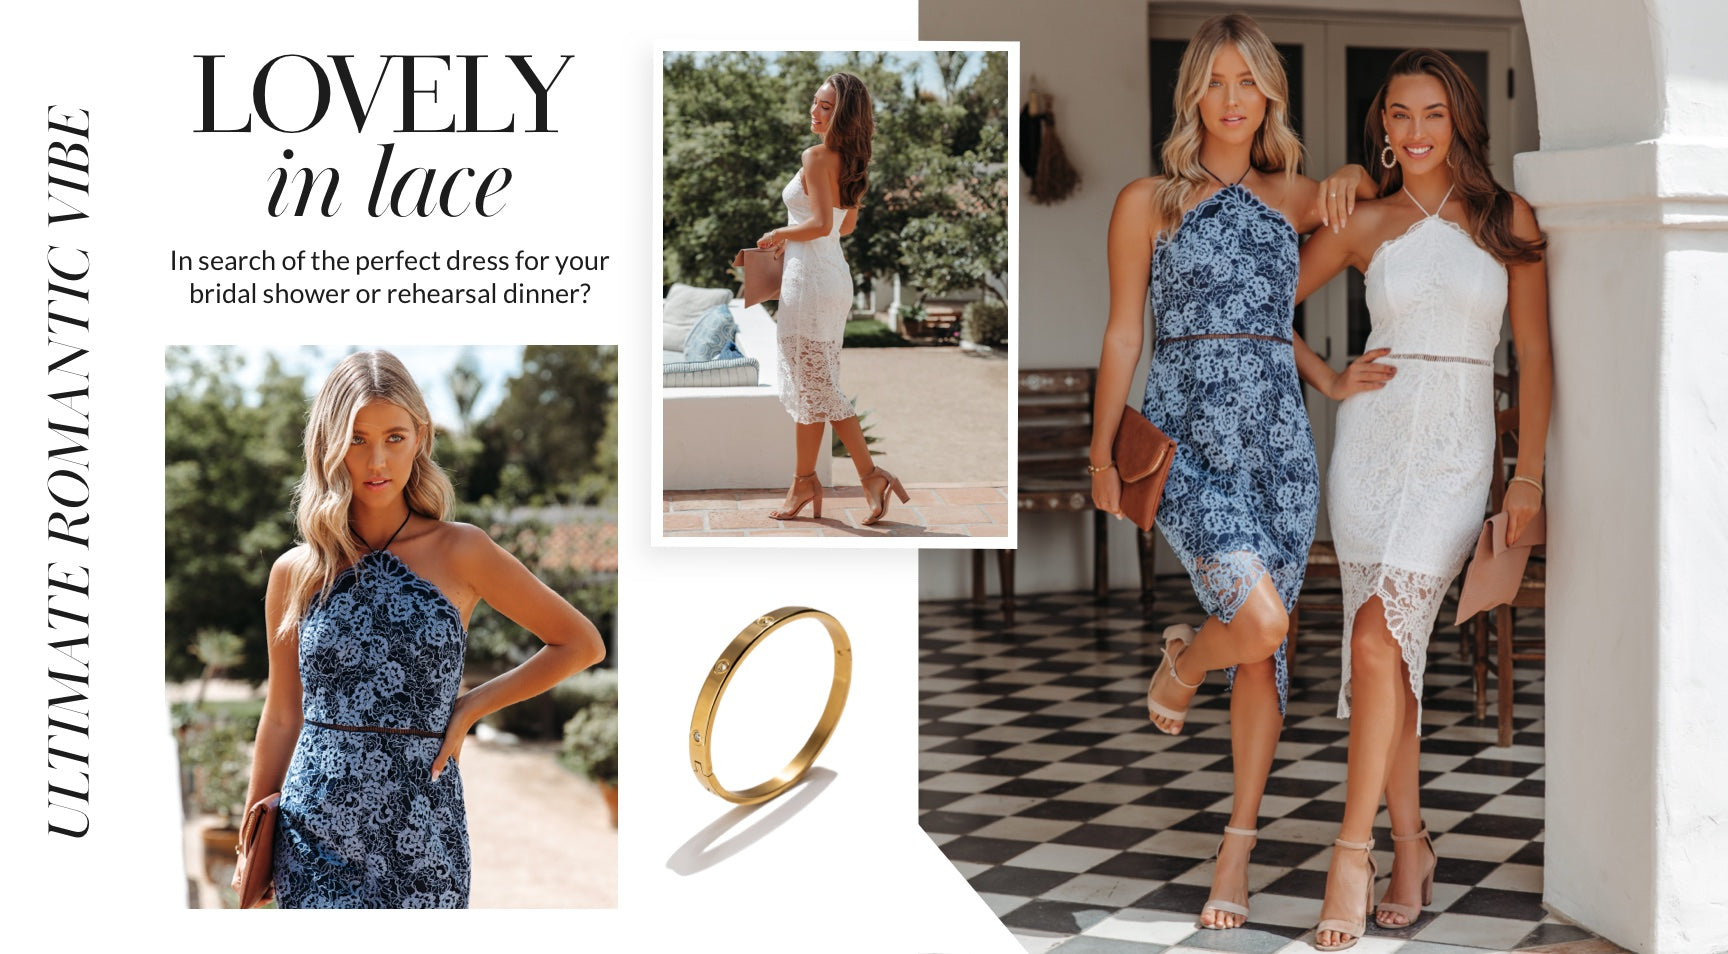 Anything lace is the ultimate romantic vibe! Scalloped edges and a halter neckline make this dress a little more fancy than the rest. In search of the perfect dress for your bridal shower or rehearsal dinner? The ivory shade looks stunning when paired with large pearl earrings for a trendy touch. Shop Lace Dresses